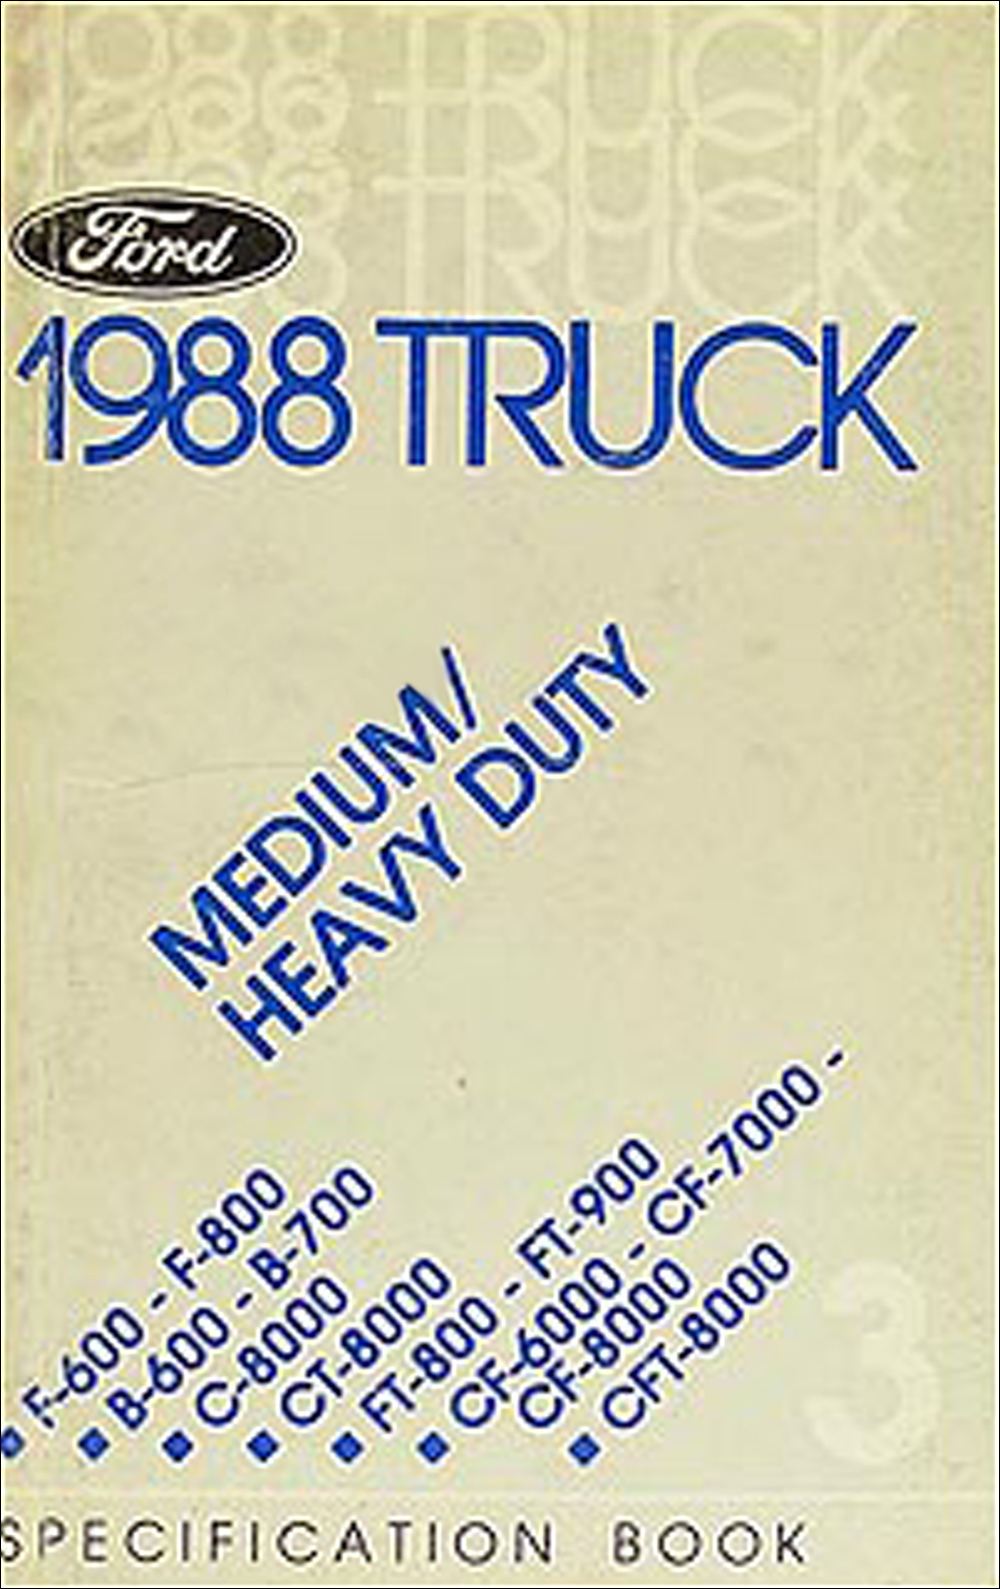 1988 Ford Medium Heavy Truck Service Spec Book F600 F800 Ft800 Ft900 600